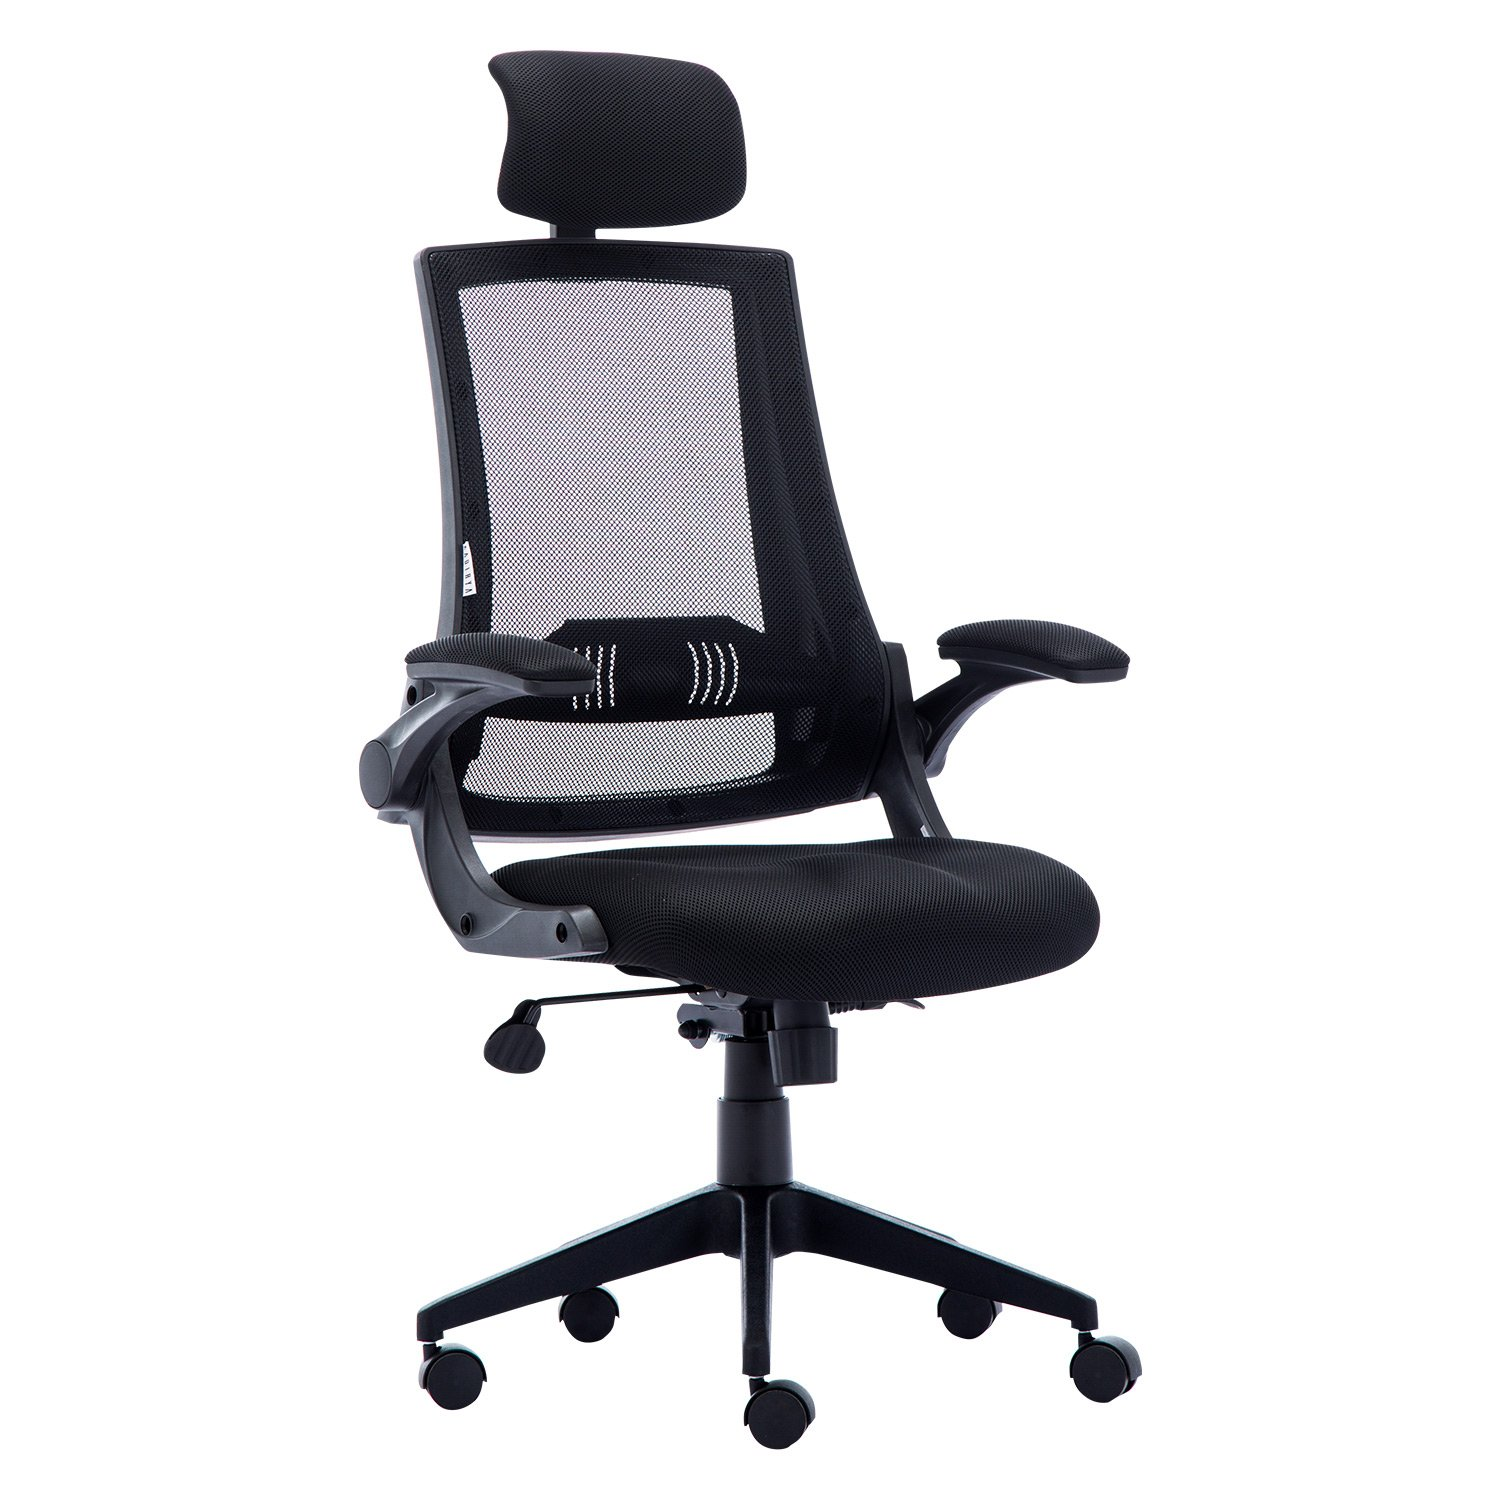 LCH Ergonomic High Back Mesh Office Chair with Ajustable Arms, Computer Desk Task Executive Chair-Black(BIFMA Certified)